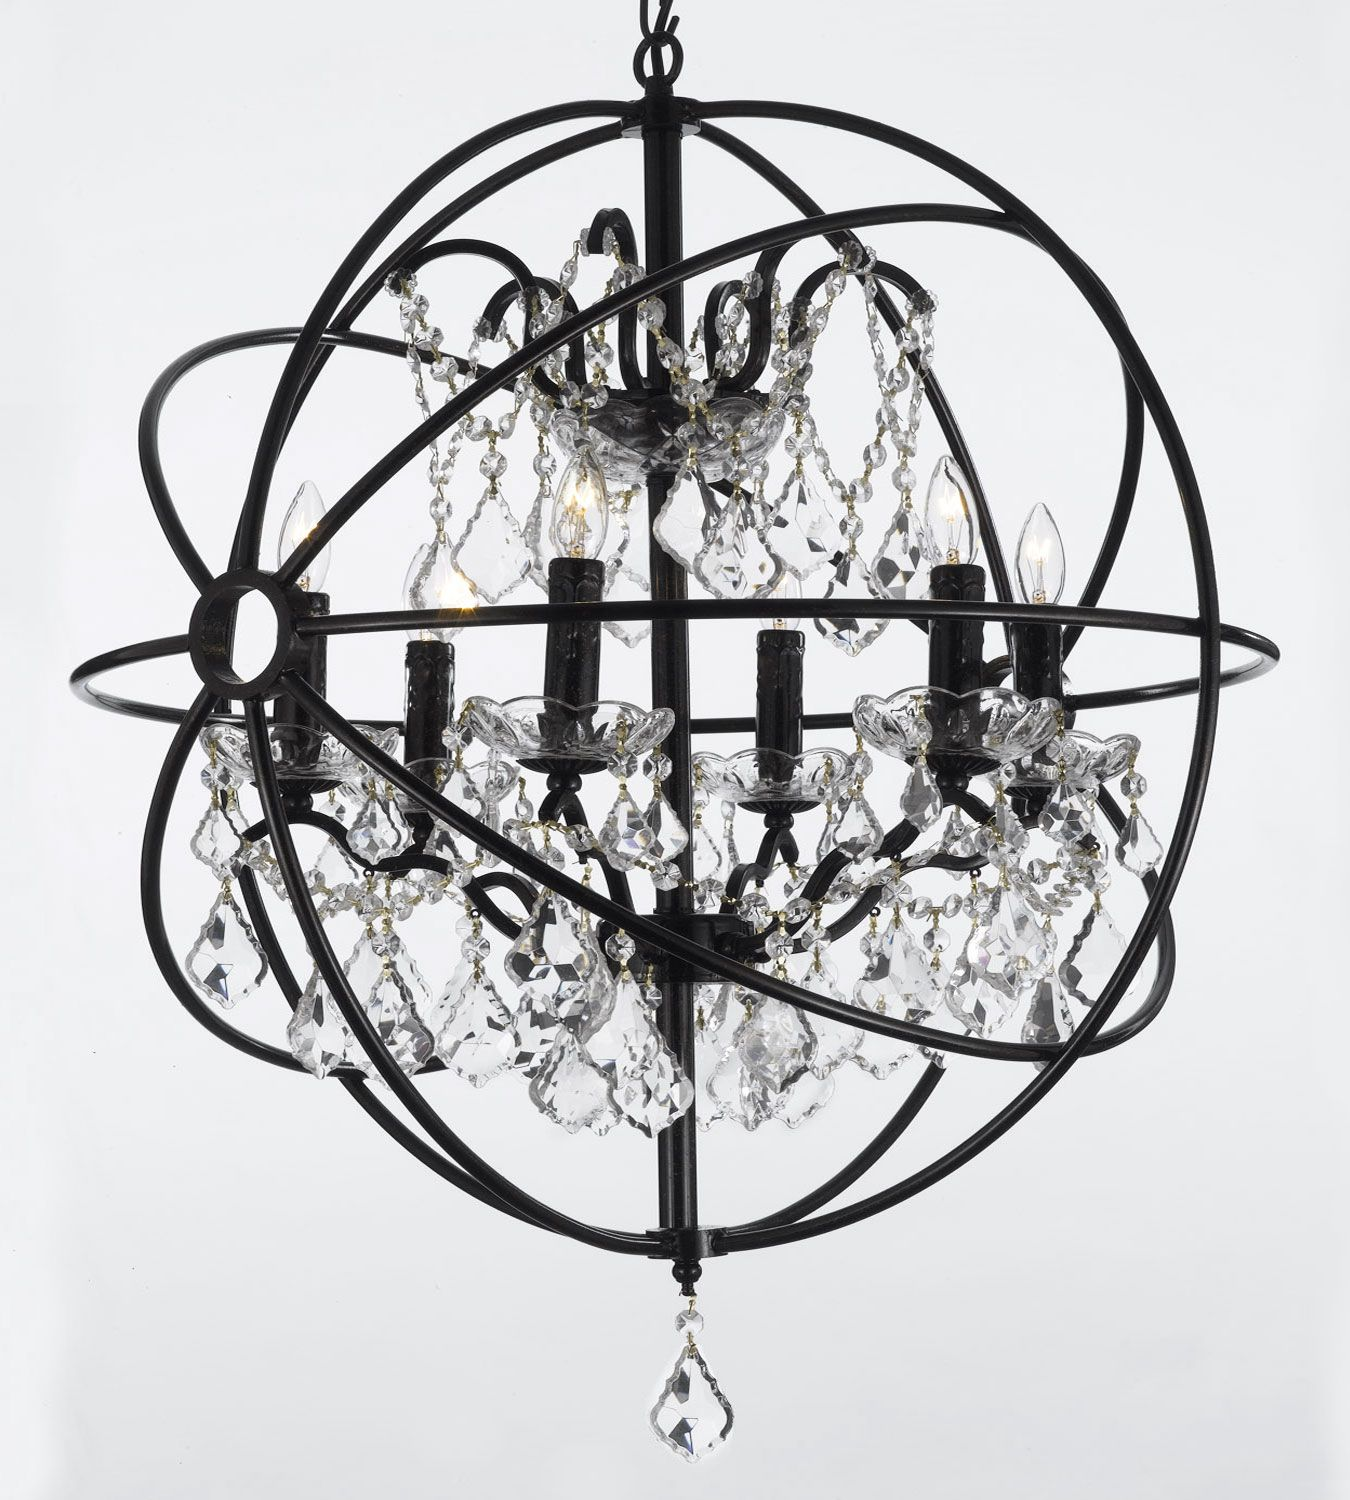 We Bought This And Spray Painted It Antique Bronze G7 988 6 Wrought With Crystal Iron Orb Chandelier